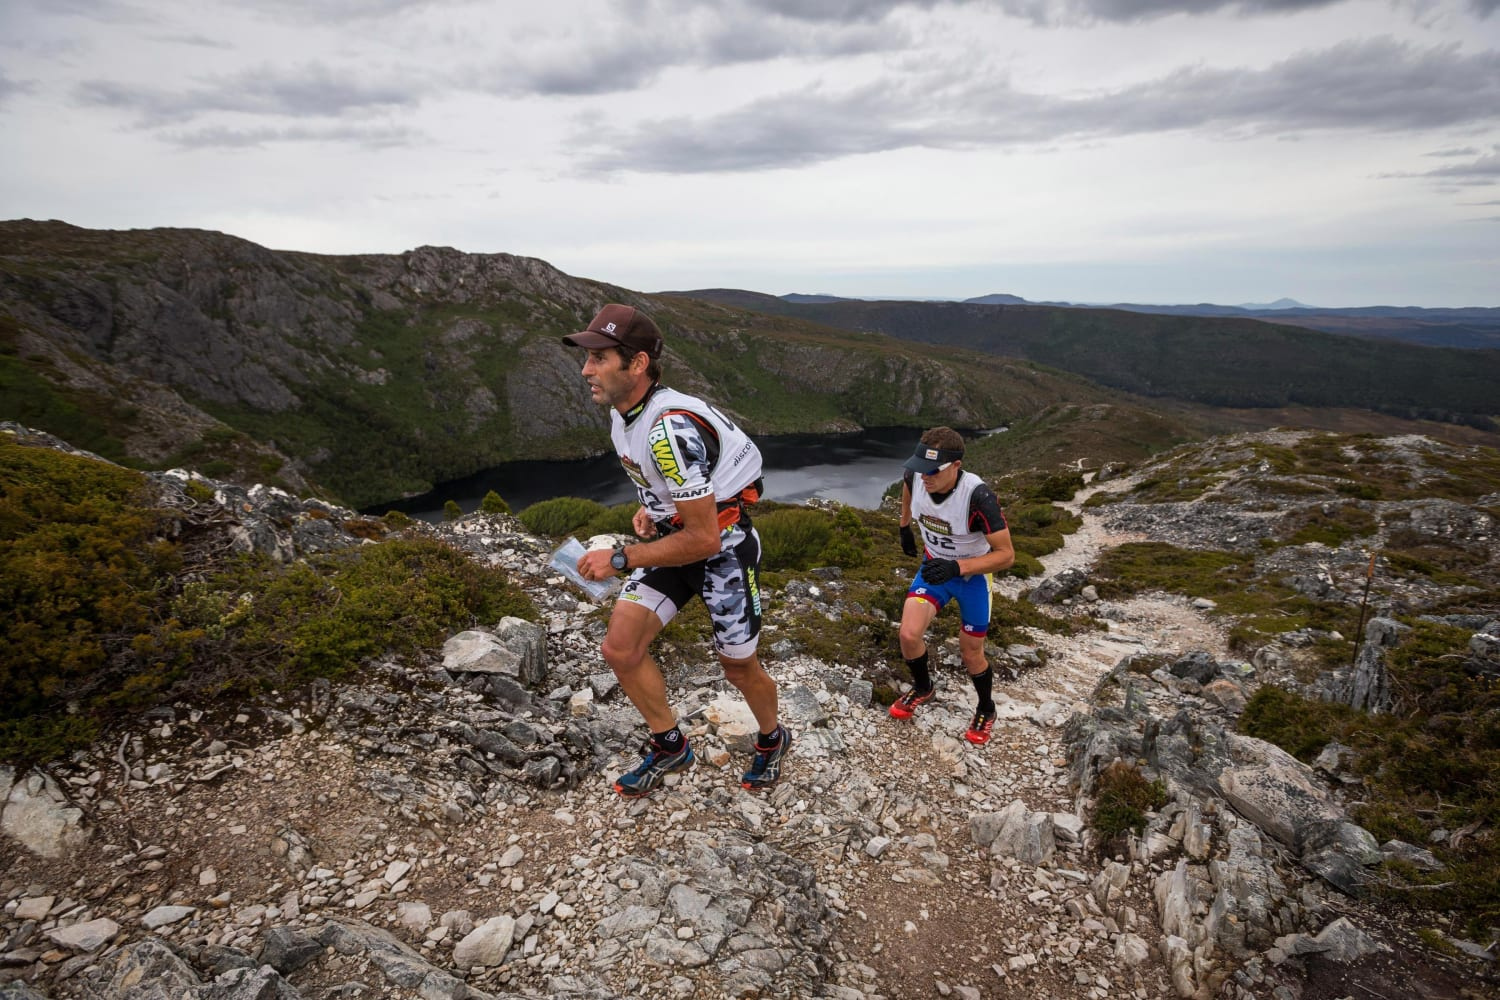 Mark Webber Tasmania Challenge Set To Begin Tomorrow